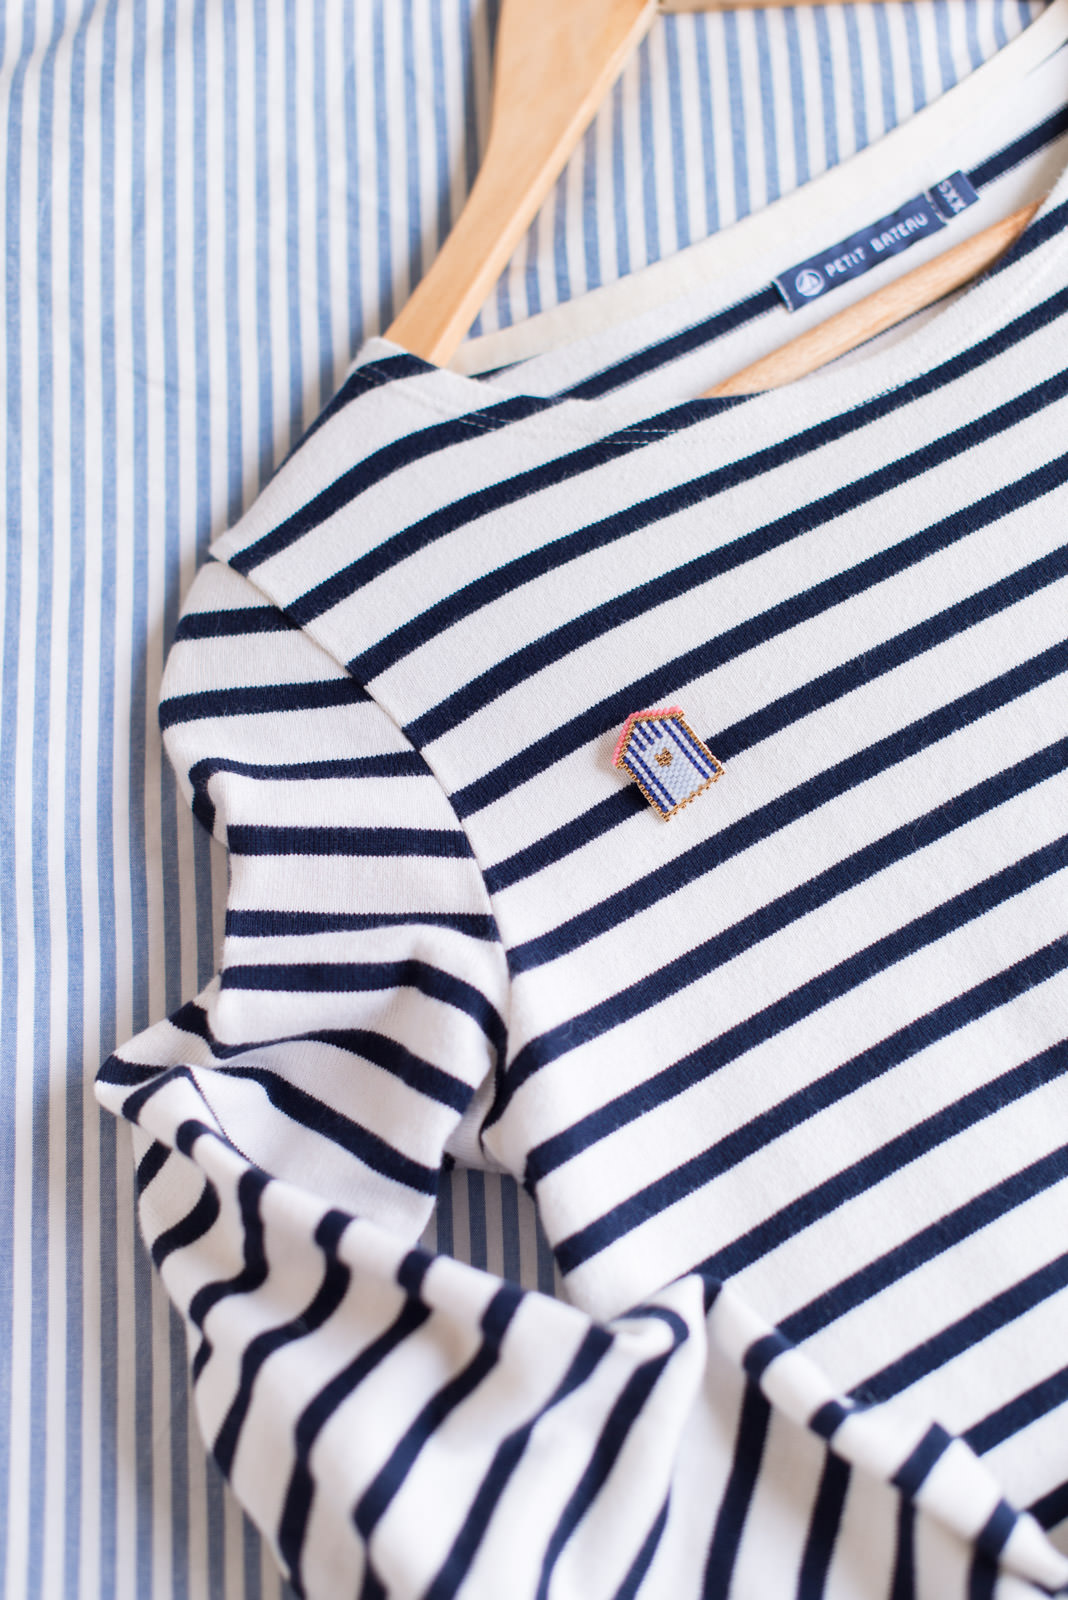 Blog-Mode-And-The-City-Lifestyle-Cinq-Petites-Choses-186-broche-cabine-plage-perles